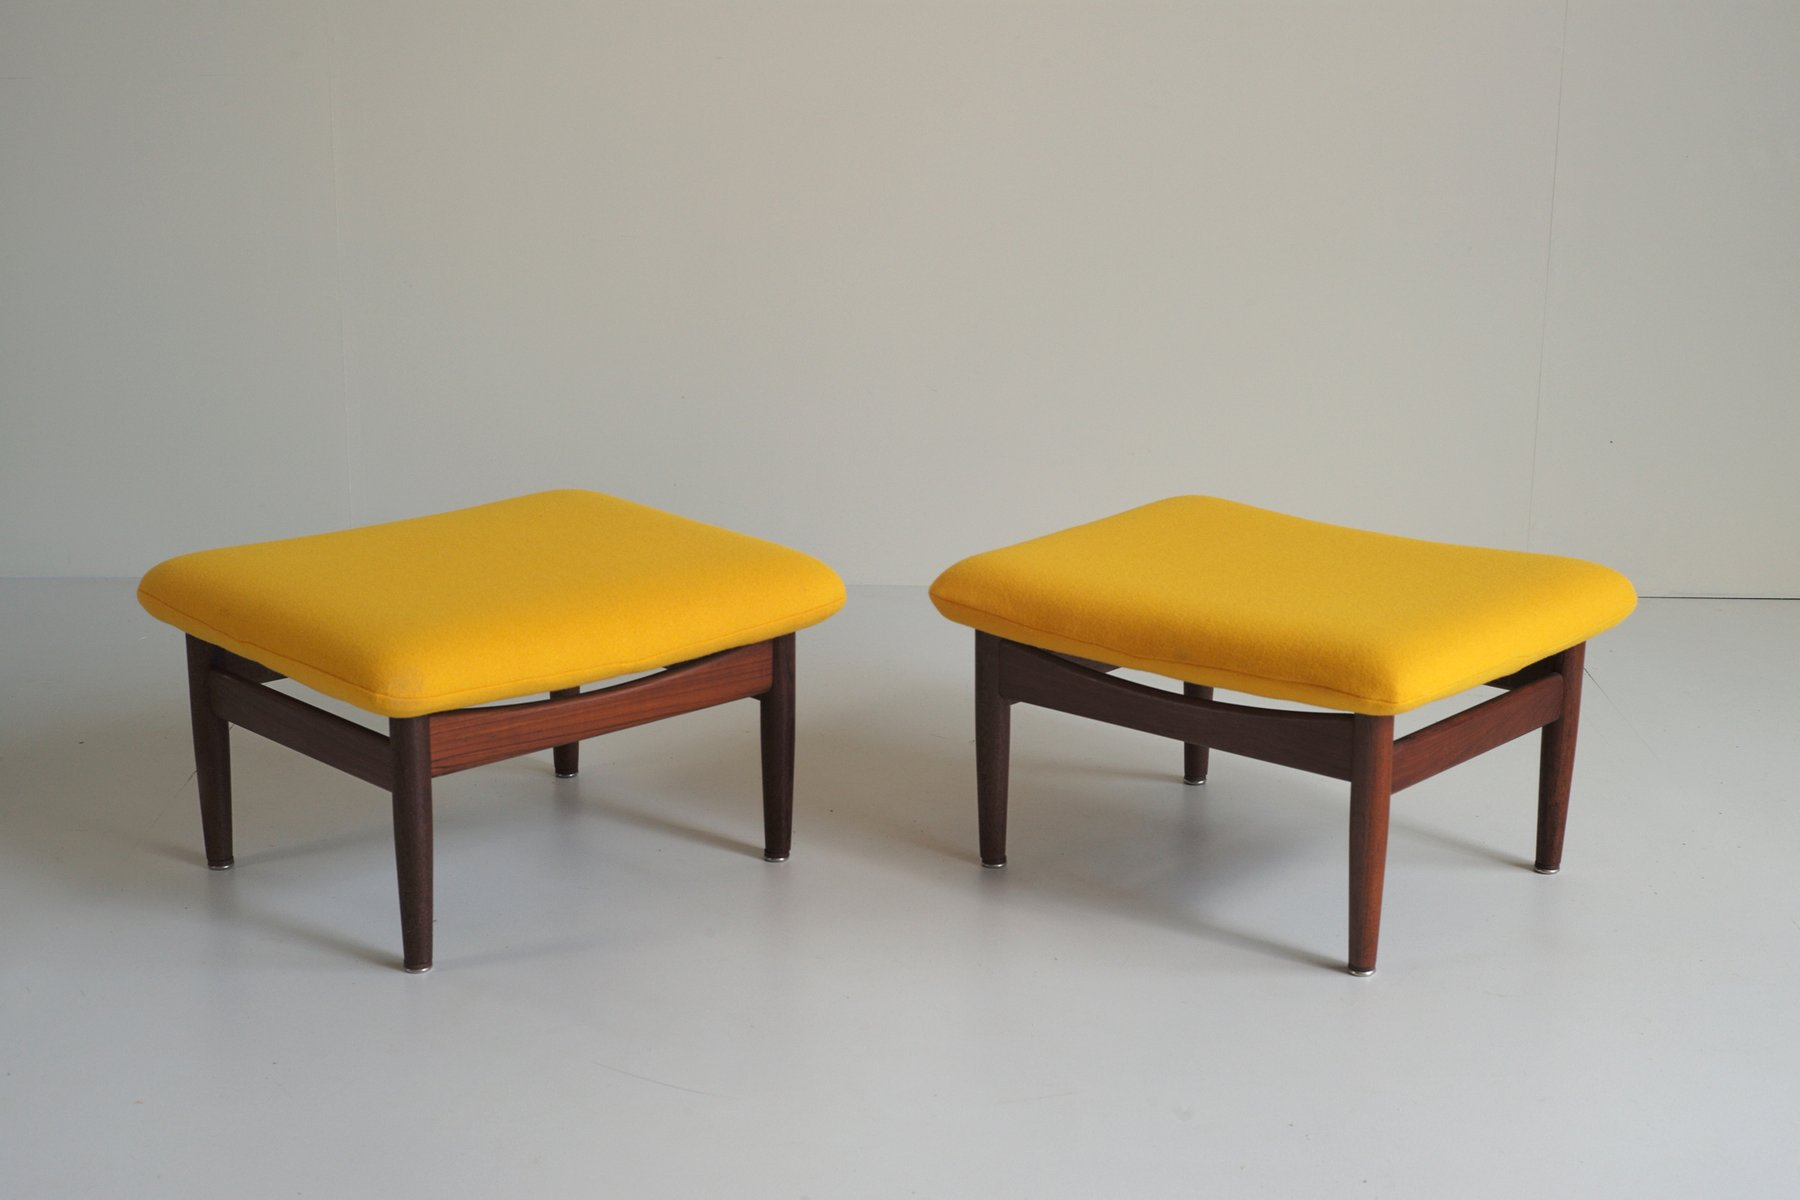 FD 137 Japan Series Stools by Finn Juhl for France & S¸n Set of 2